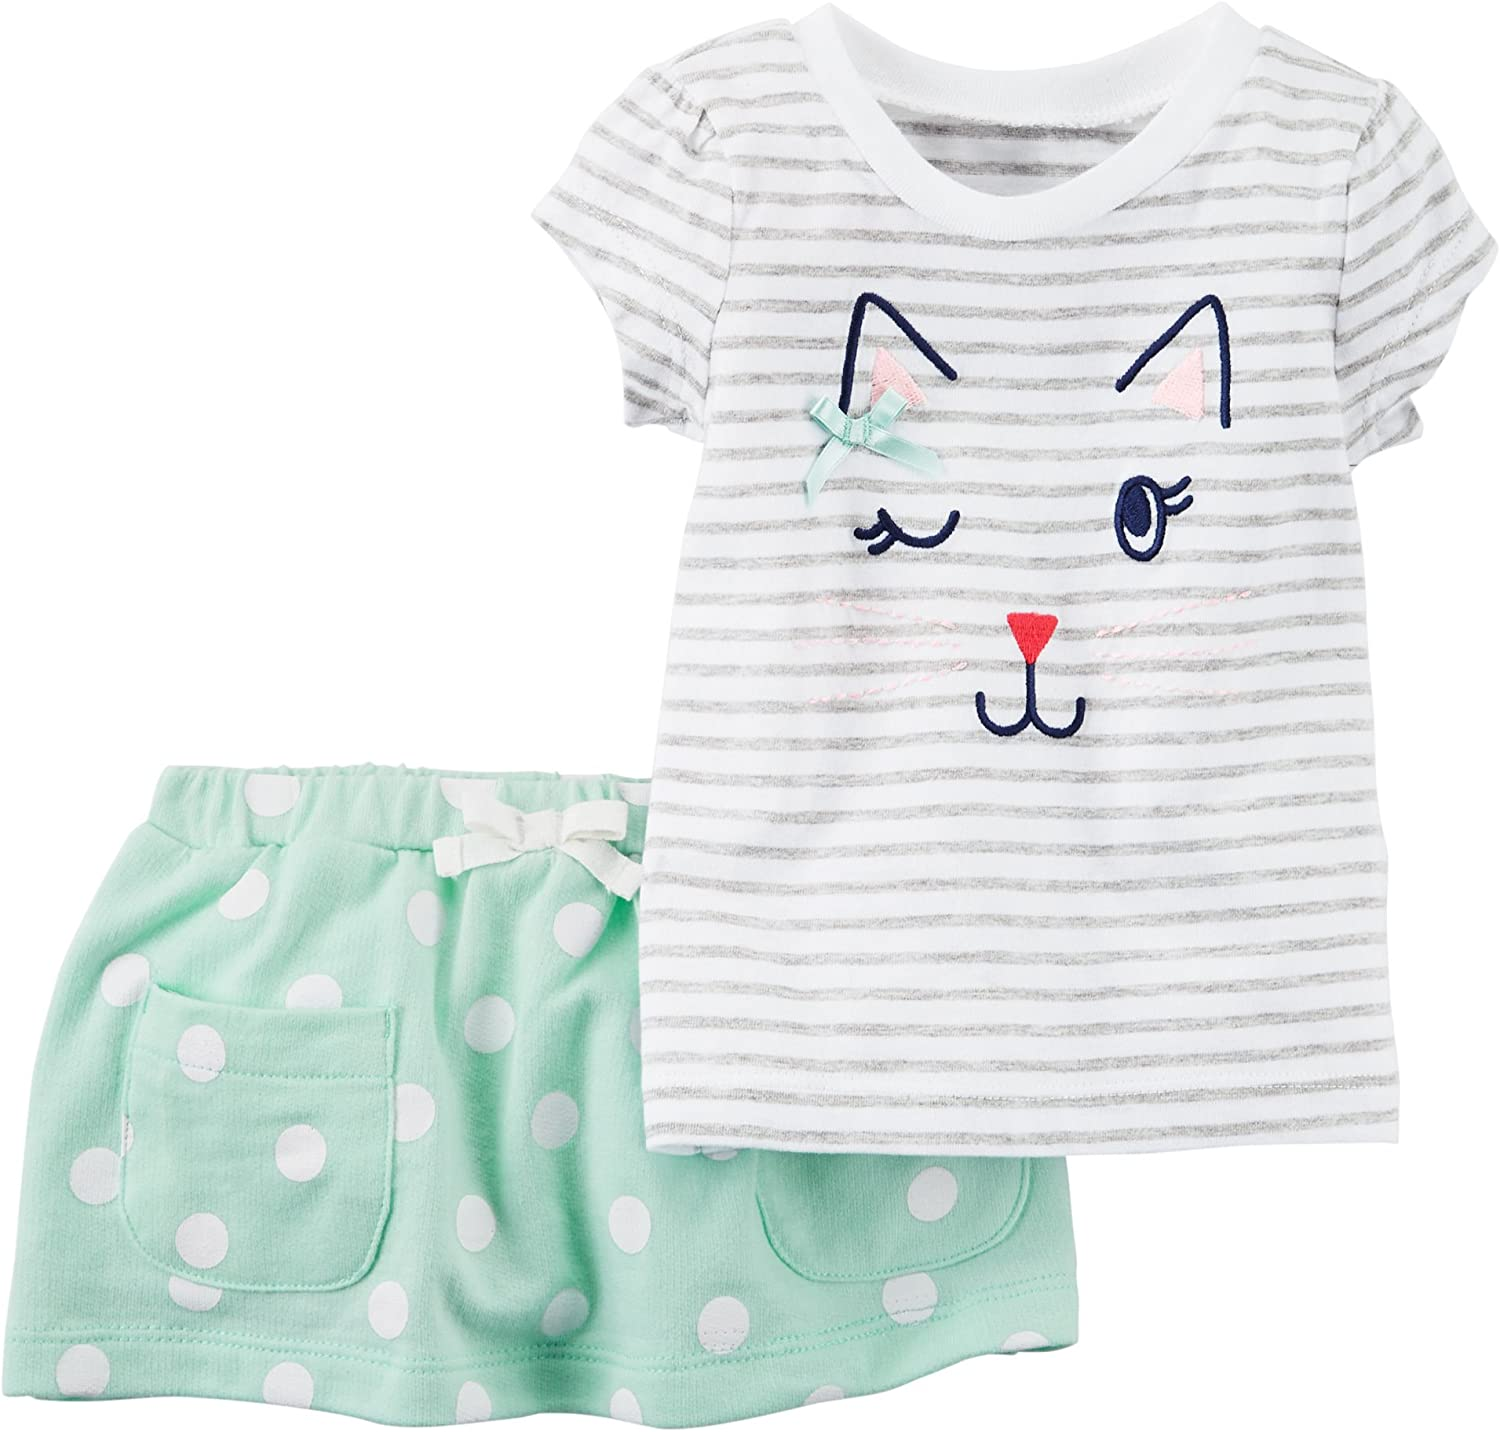 Carters Baby Girls Short Sleeve Striped Cat Face Top and Dot Skirt Set 6 Months